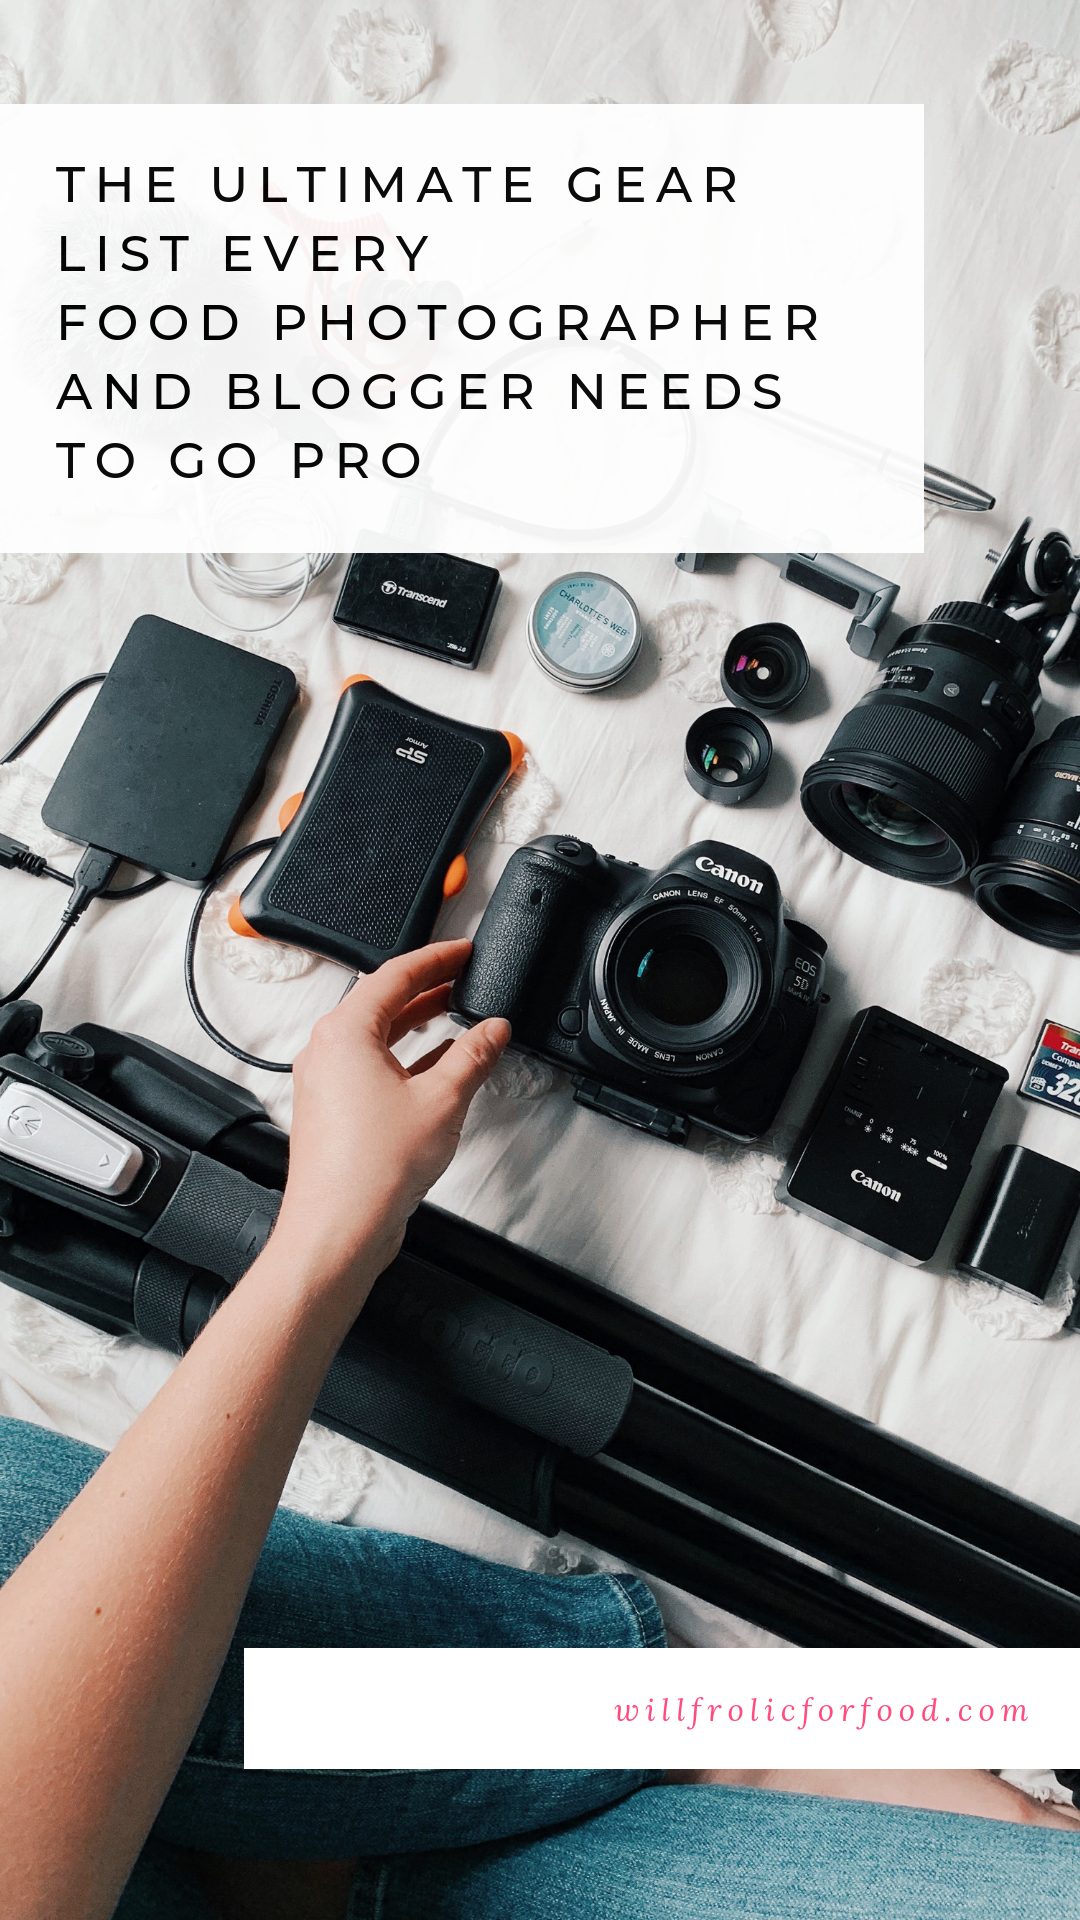 the ultimate gear list every food photographer and blogger needs to go pro - will frolic for food blog